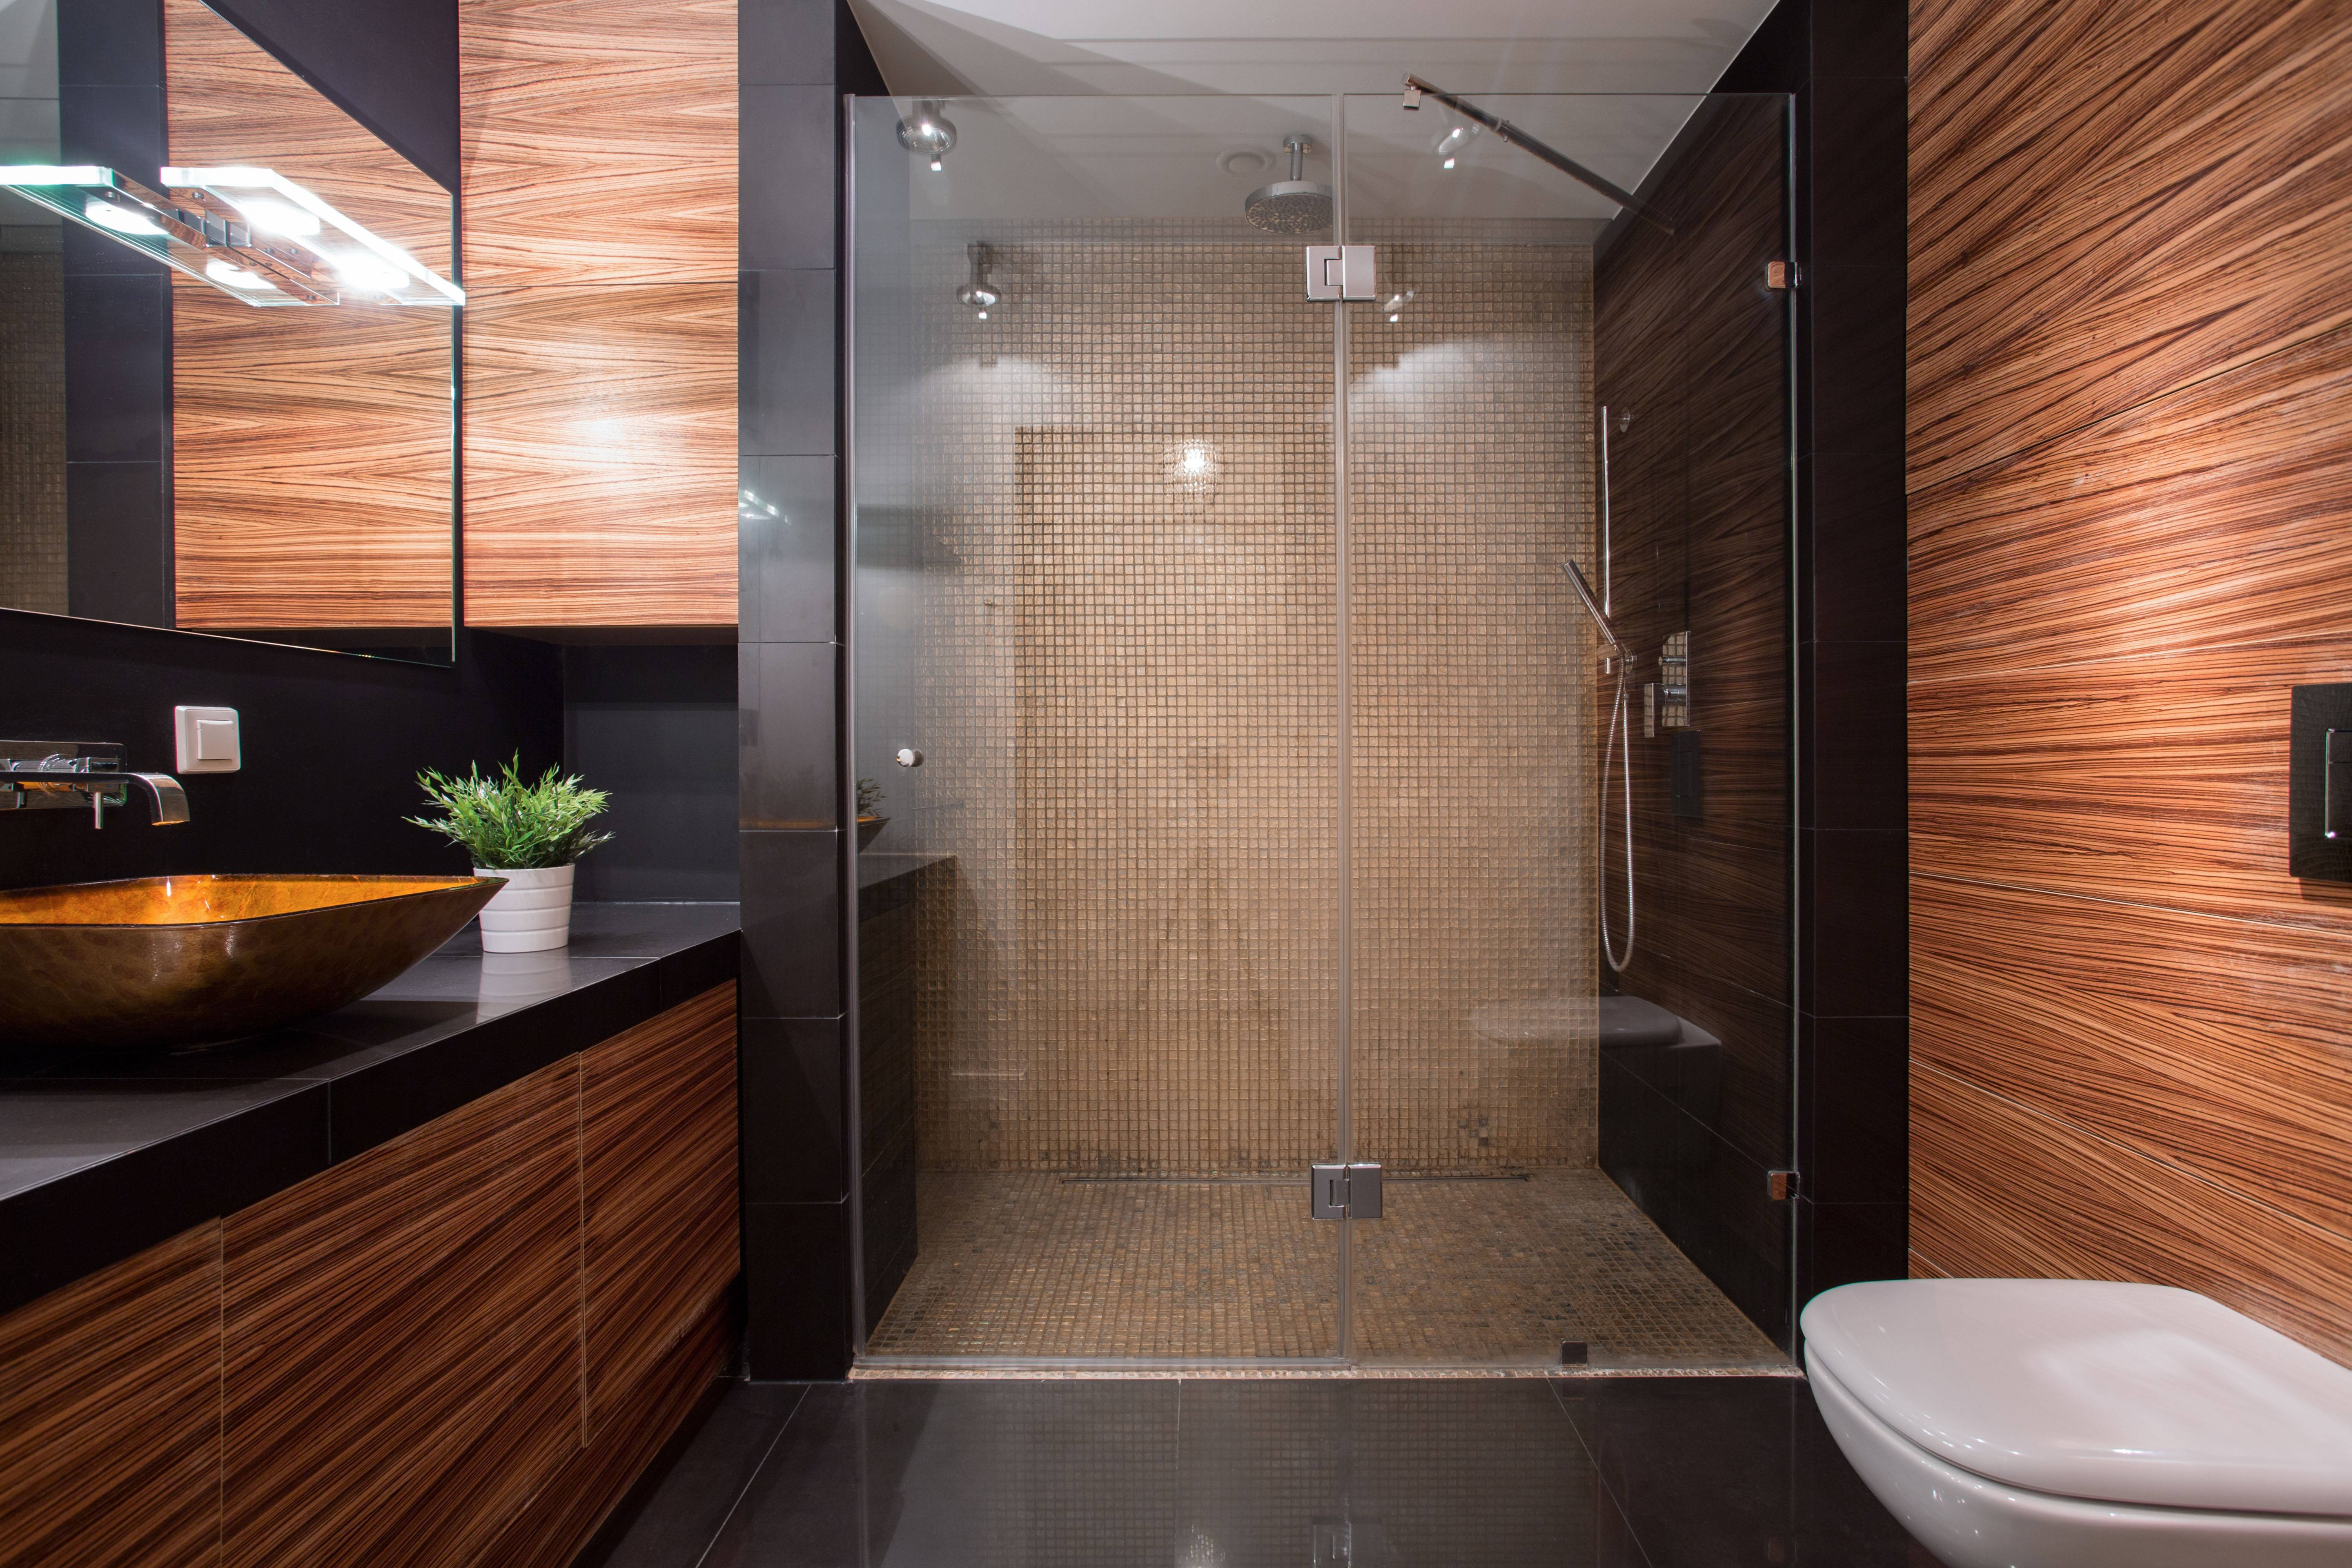 Clean mix-and-match: A blend of textures and materials, such as glass, wood, metal and stone, provides sleek, pleasing visual sightlines, and also creates a lighter, open feel in modern bathroom design.